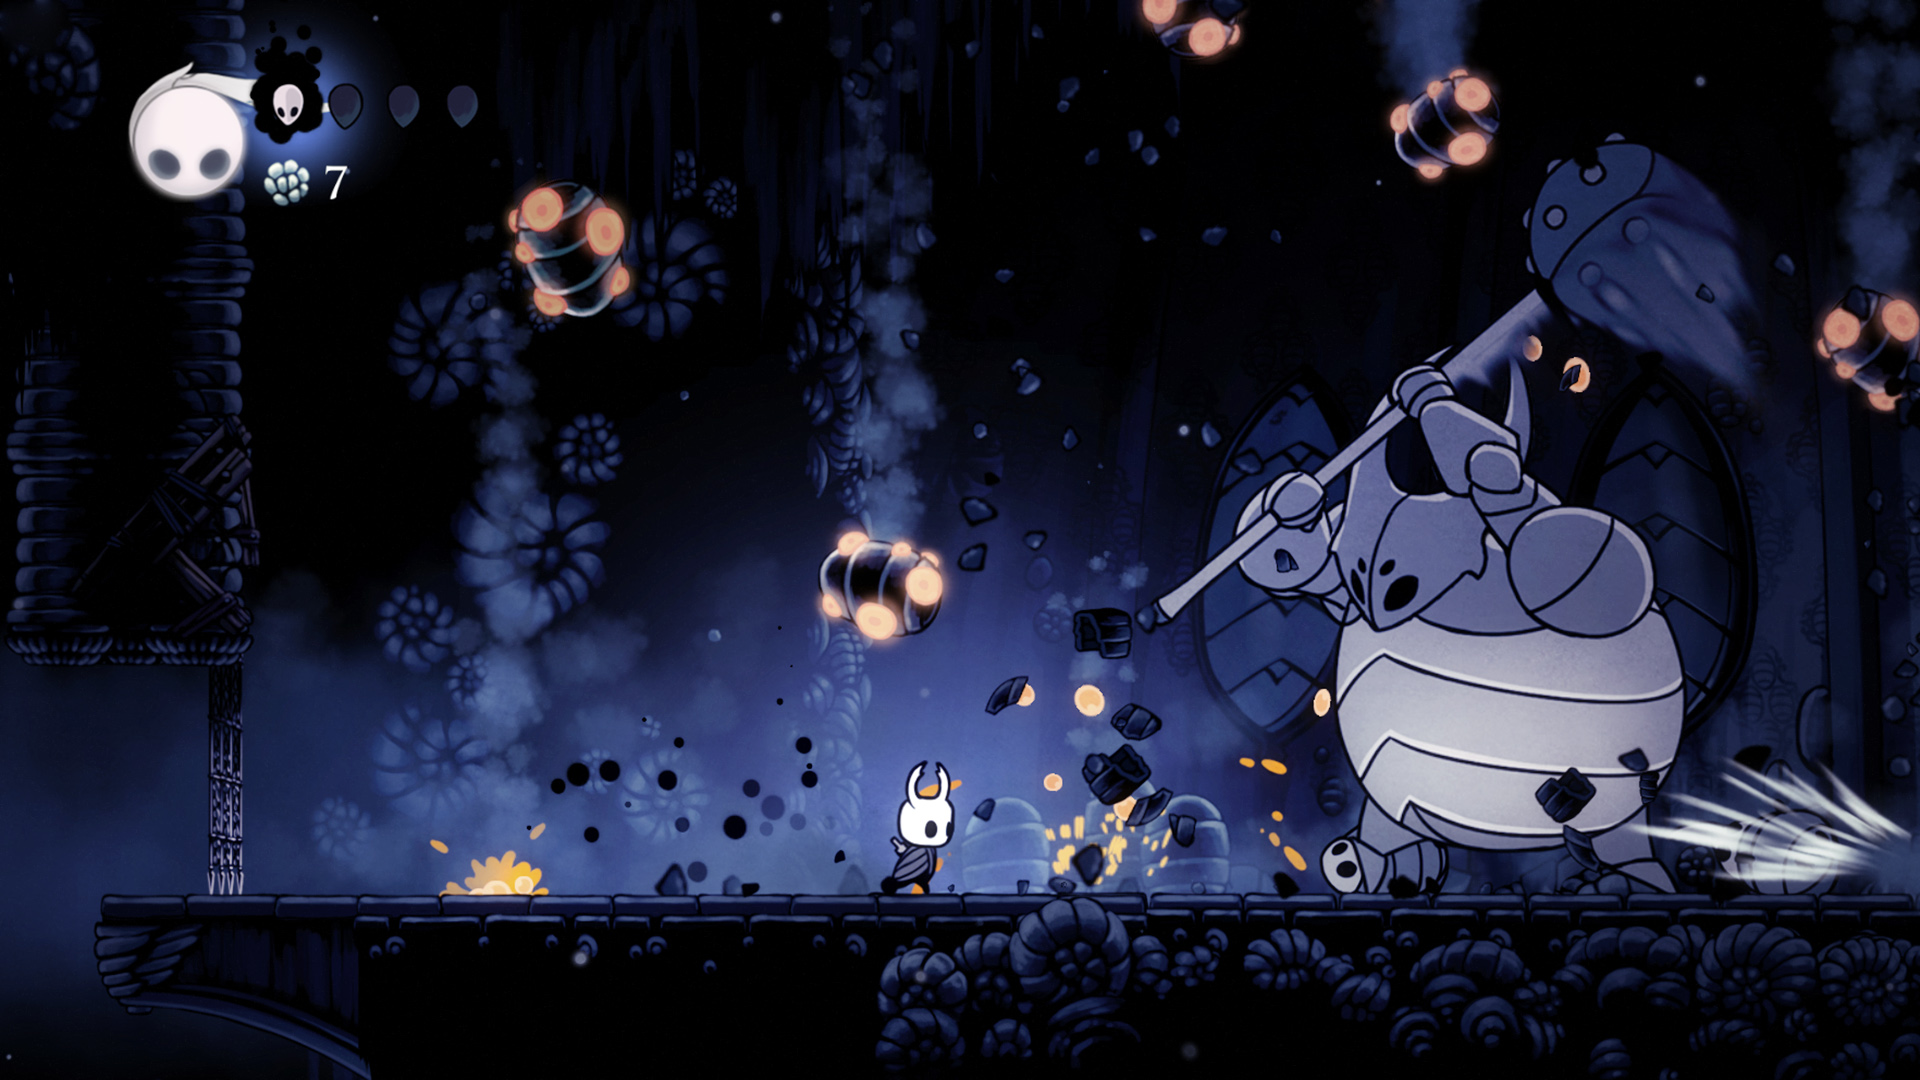 """Hollow Knight"" indie video game"